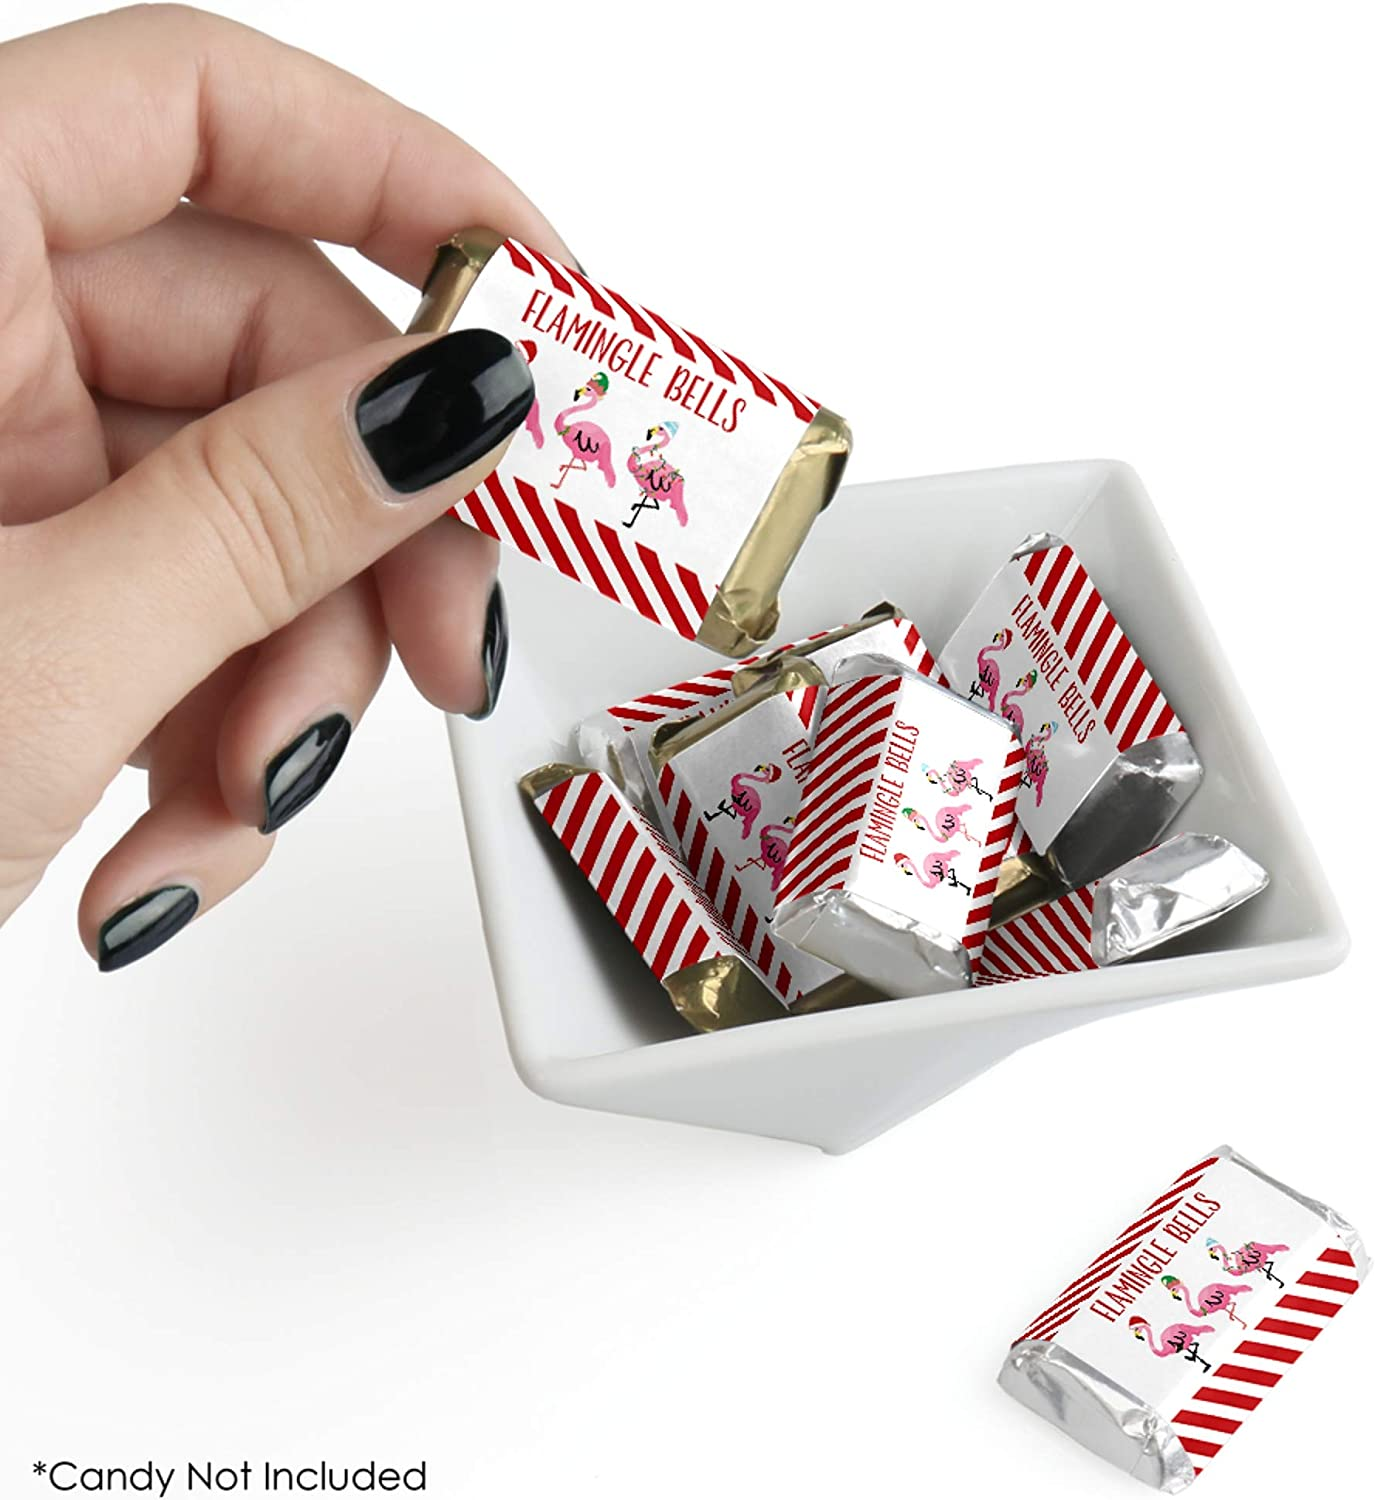 Mini Candy Bar Wrapper Stickers 40 Count Tropical Christmas Party Small Favors Big Dot of Happiness Flamingle Bells